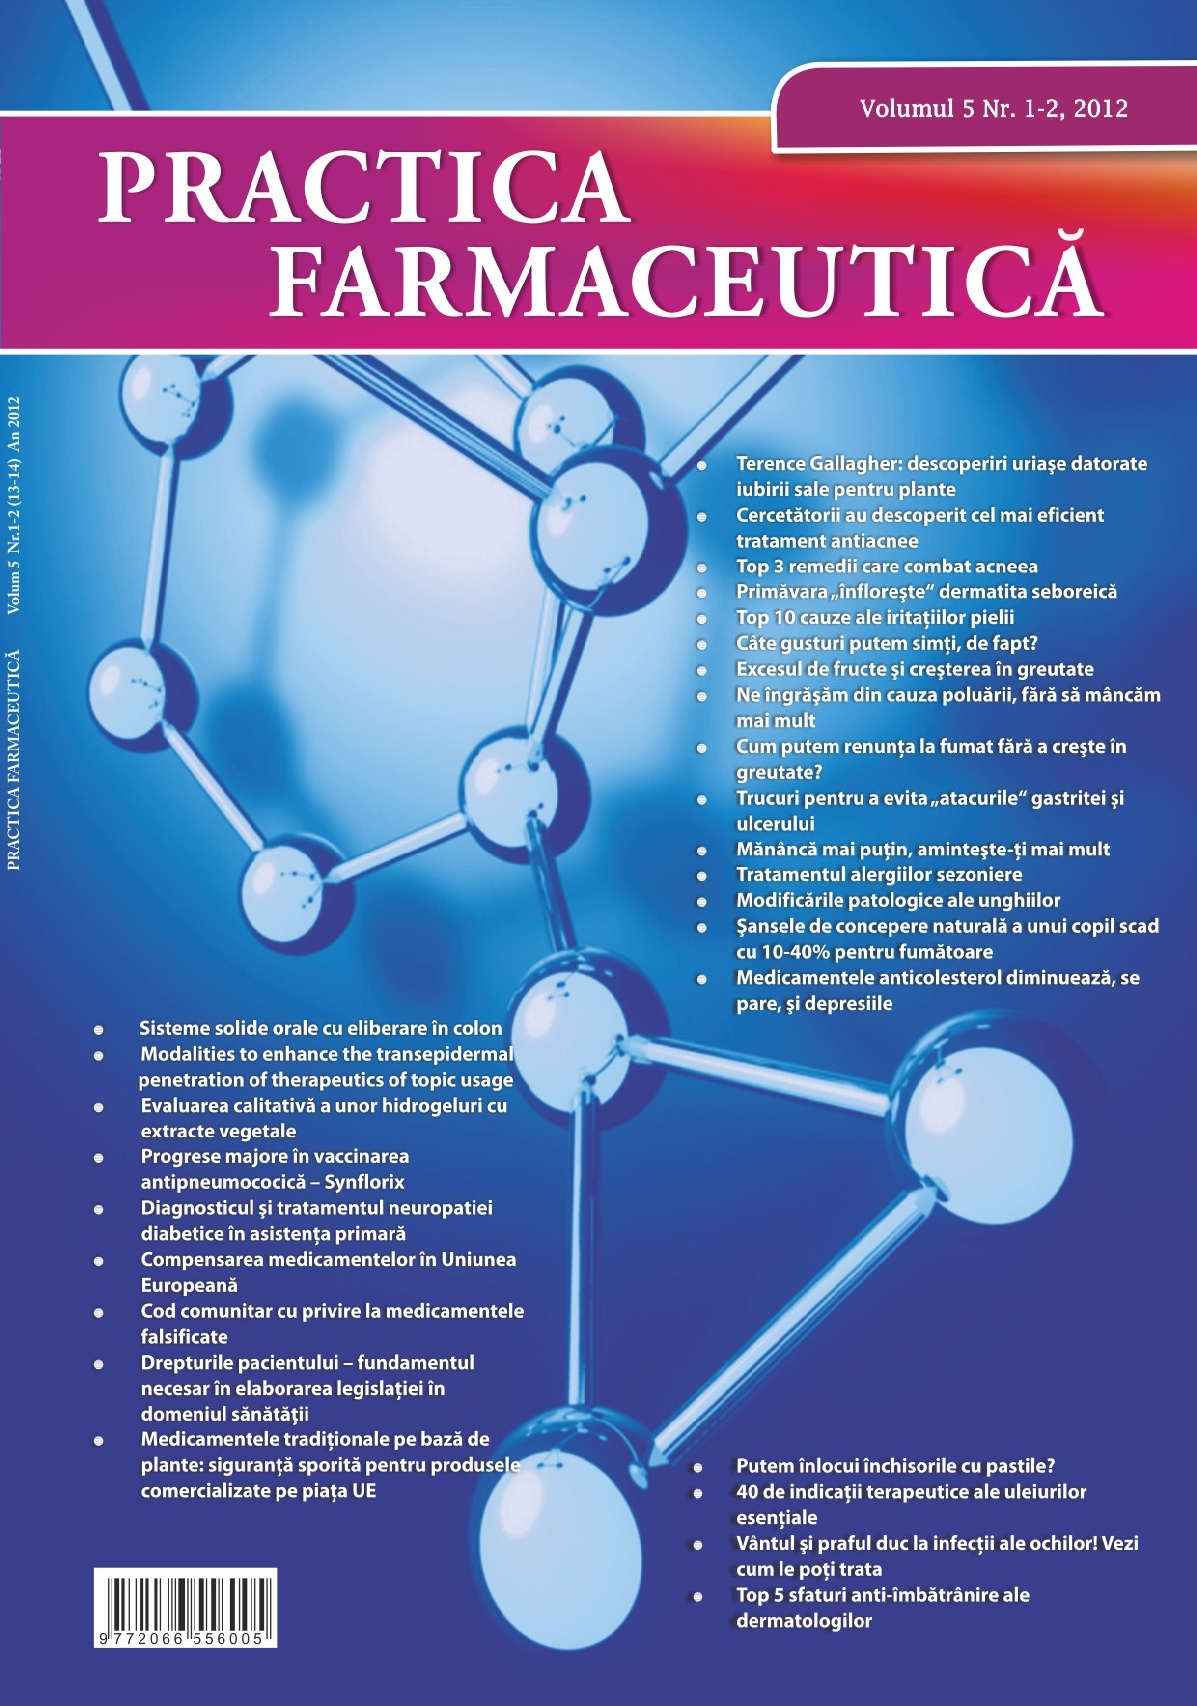 Revista Practica Farmaceutica, Vol. V, No. 1-2 (13-14), 2012